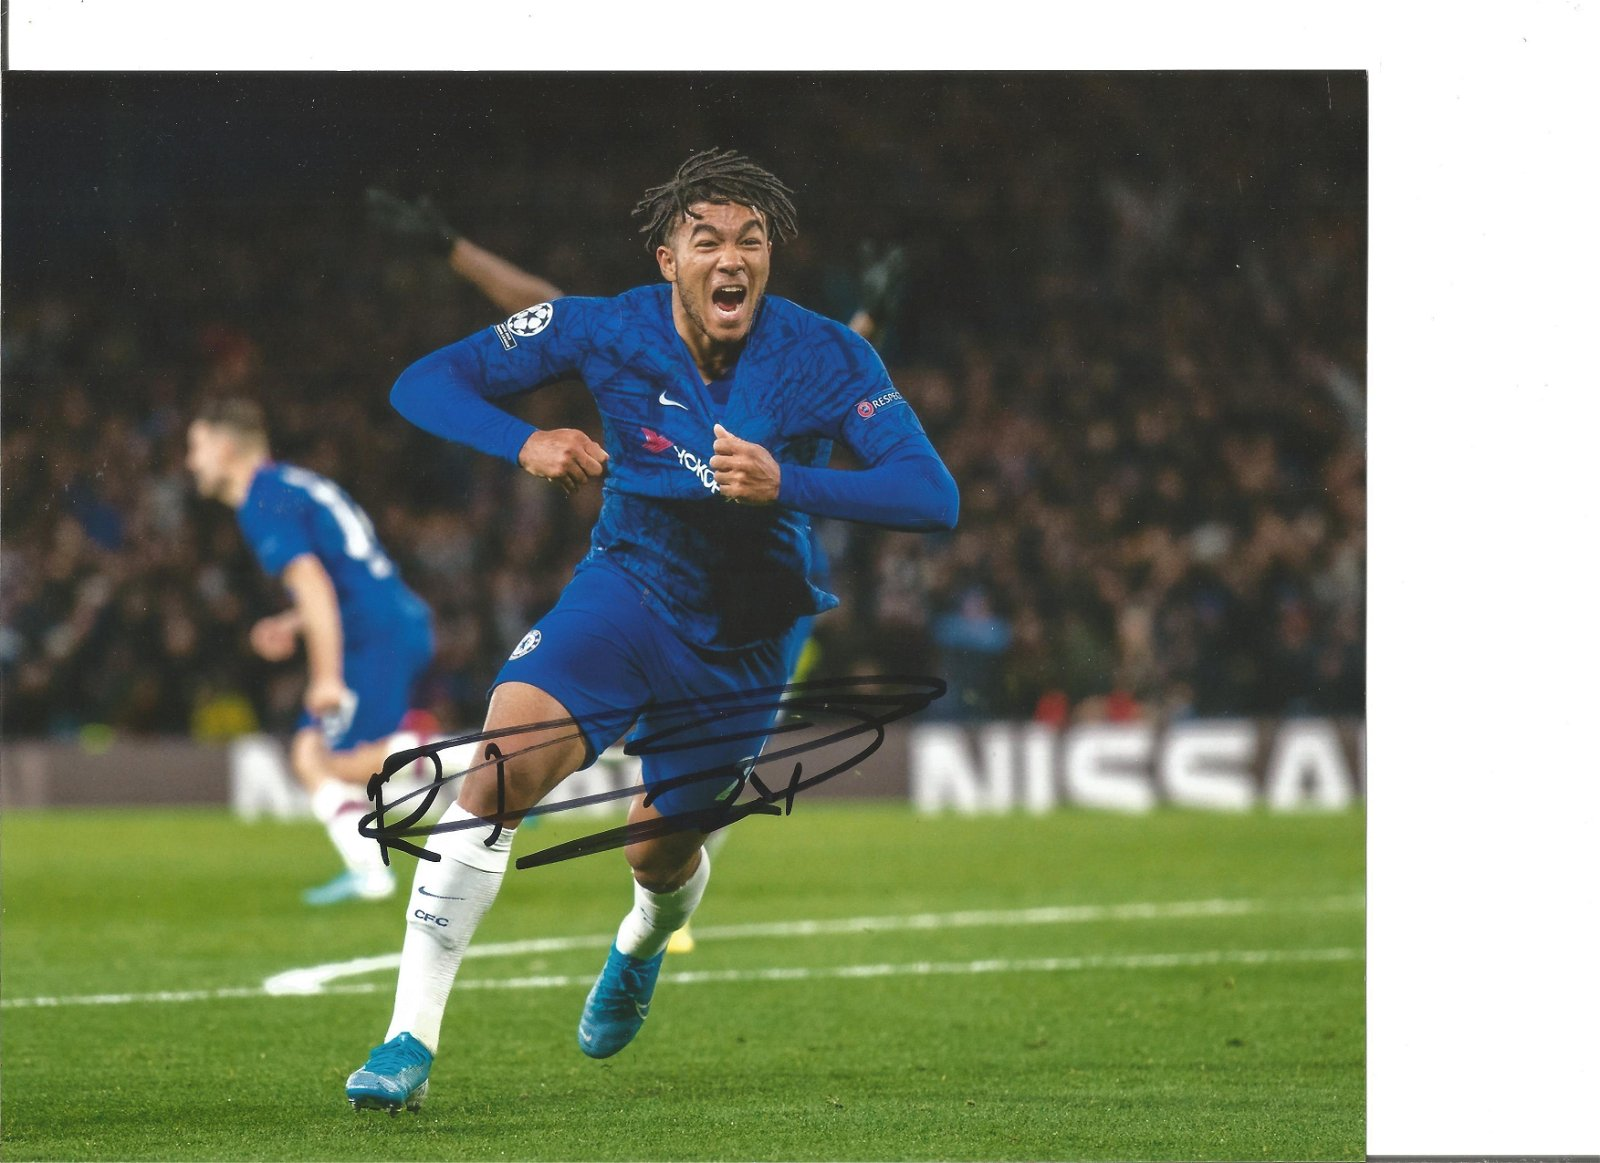 Reece James Signed Chelsea 8x10 Photo. Good Condition.